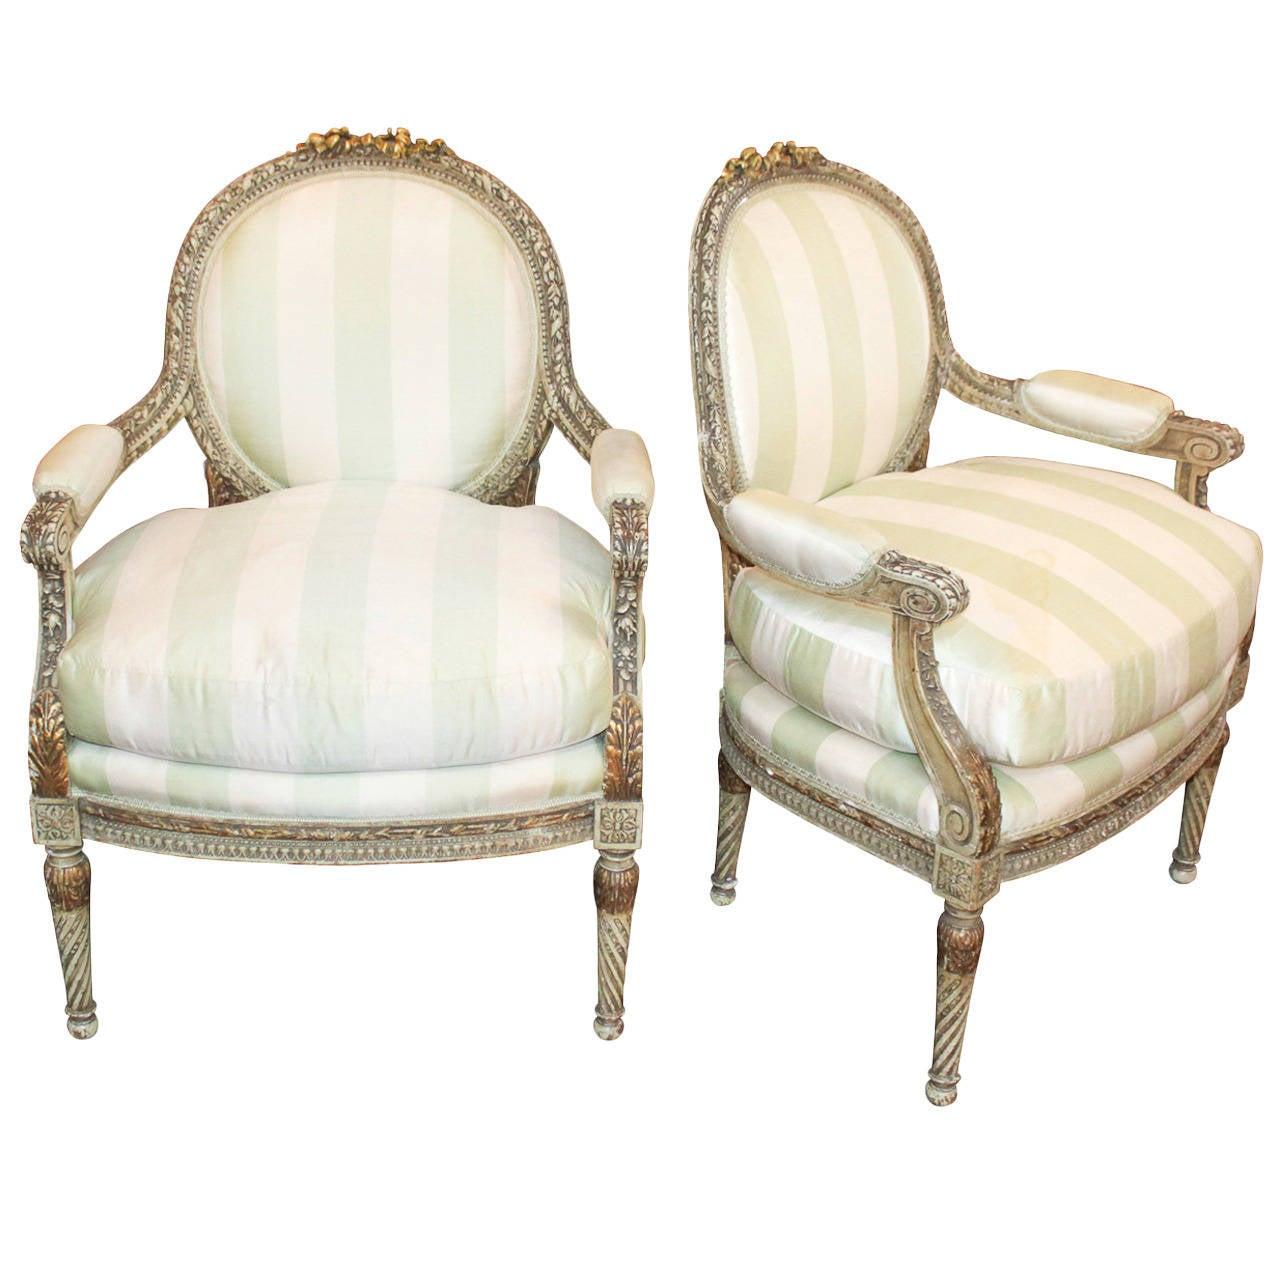 19th century pair of french louis xvi fauteuils at 1stdibs. Black Bedroom Furniture Sets. Home Design Ideas